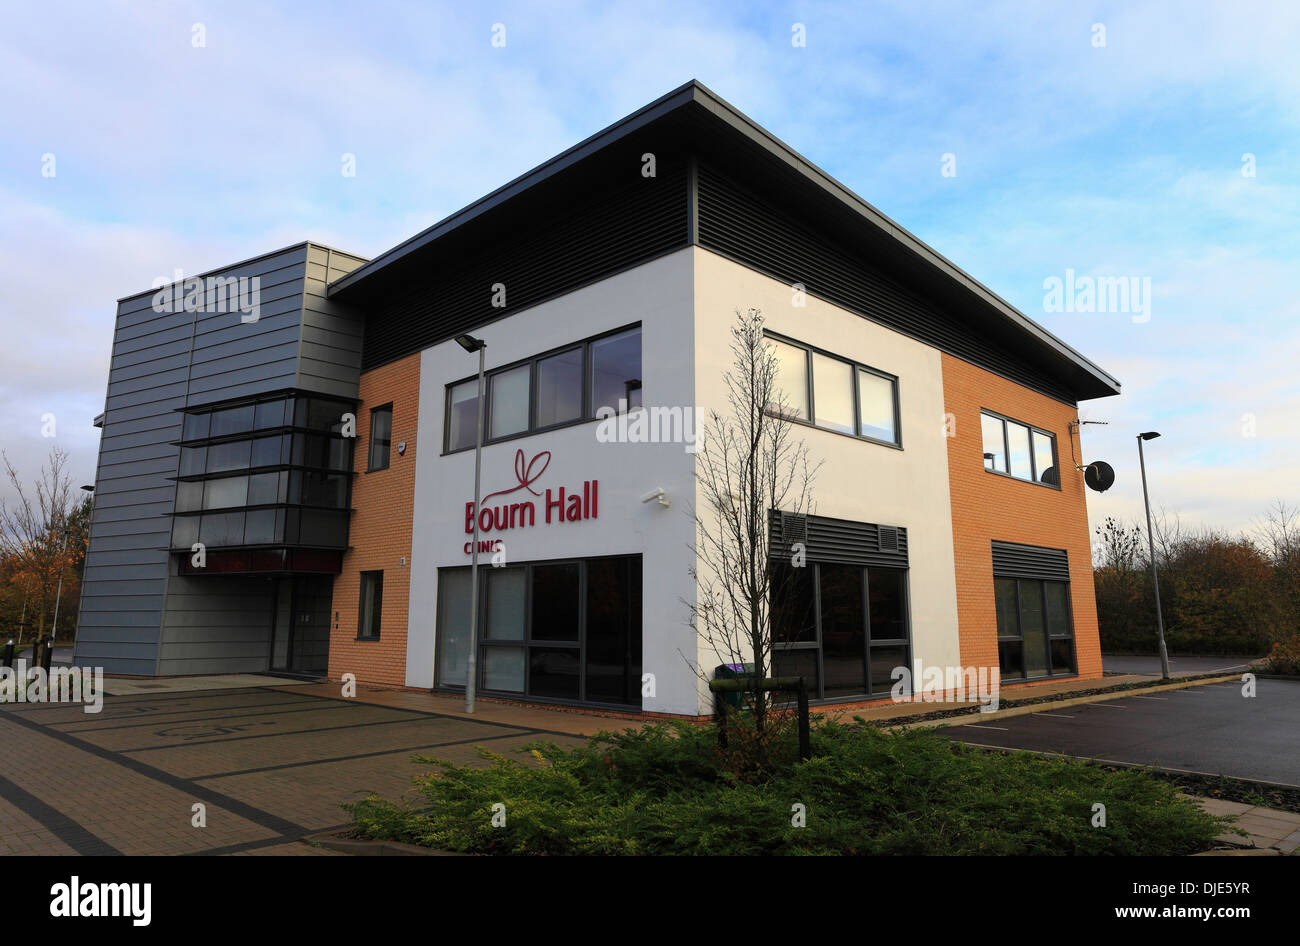 Bourn Hall fertility clinic at Wymondham in Norfolk. - Stock Image